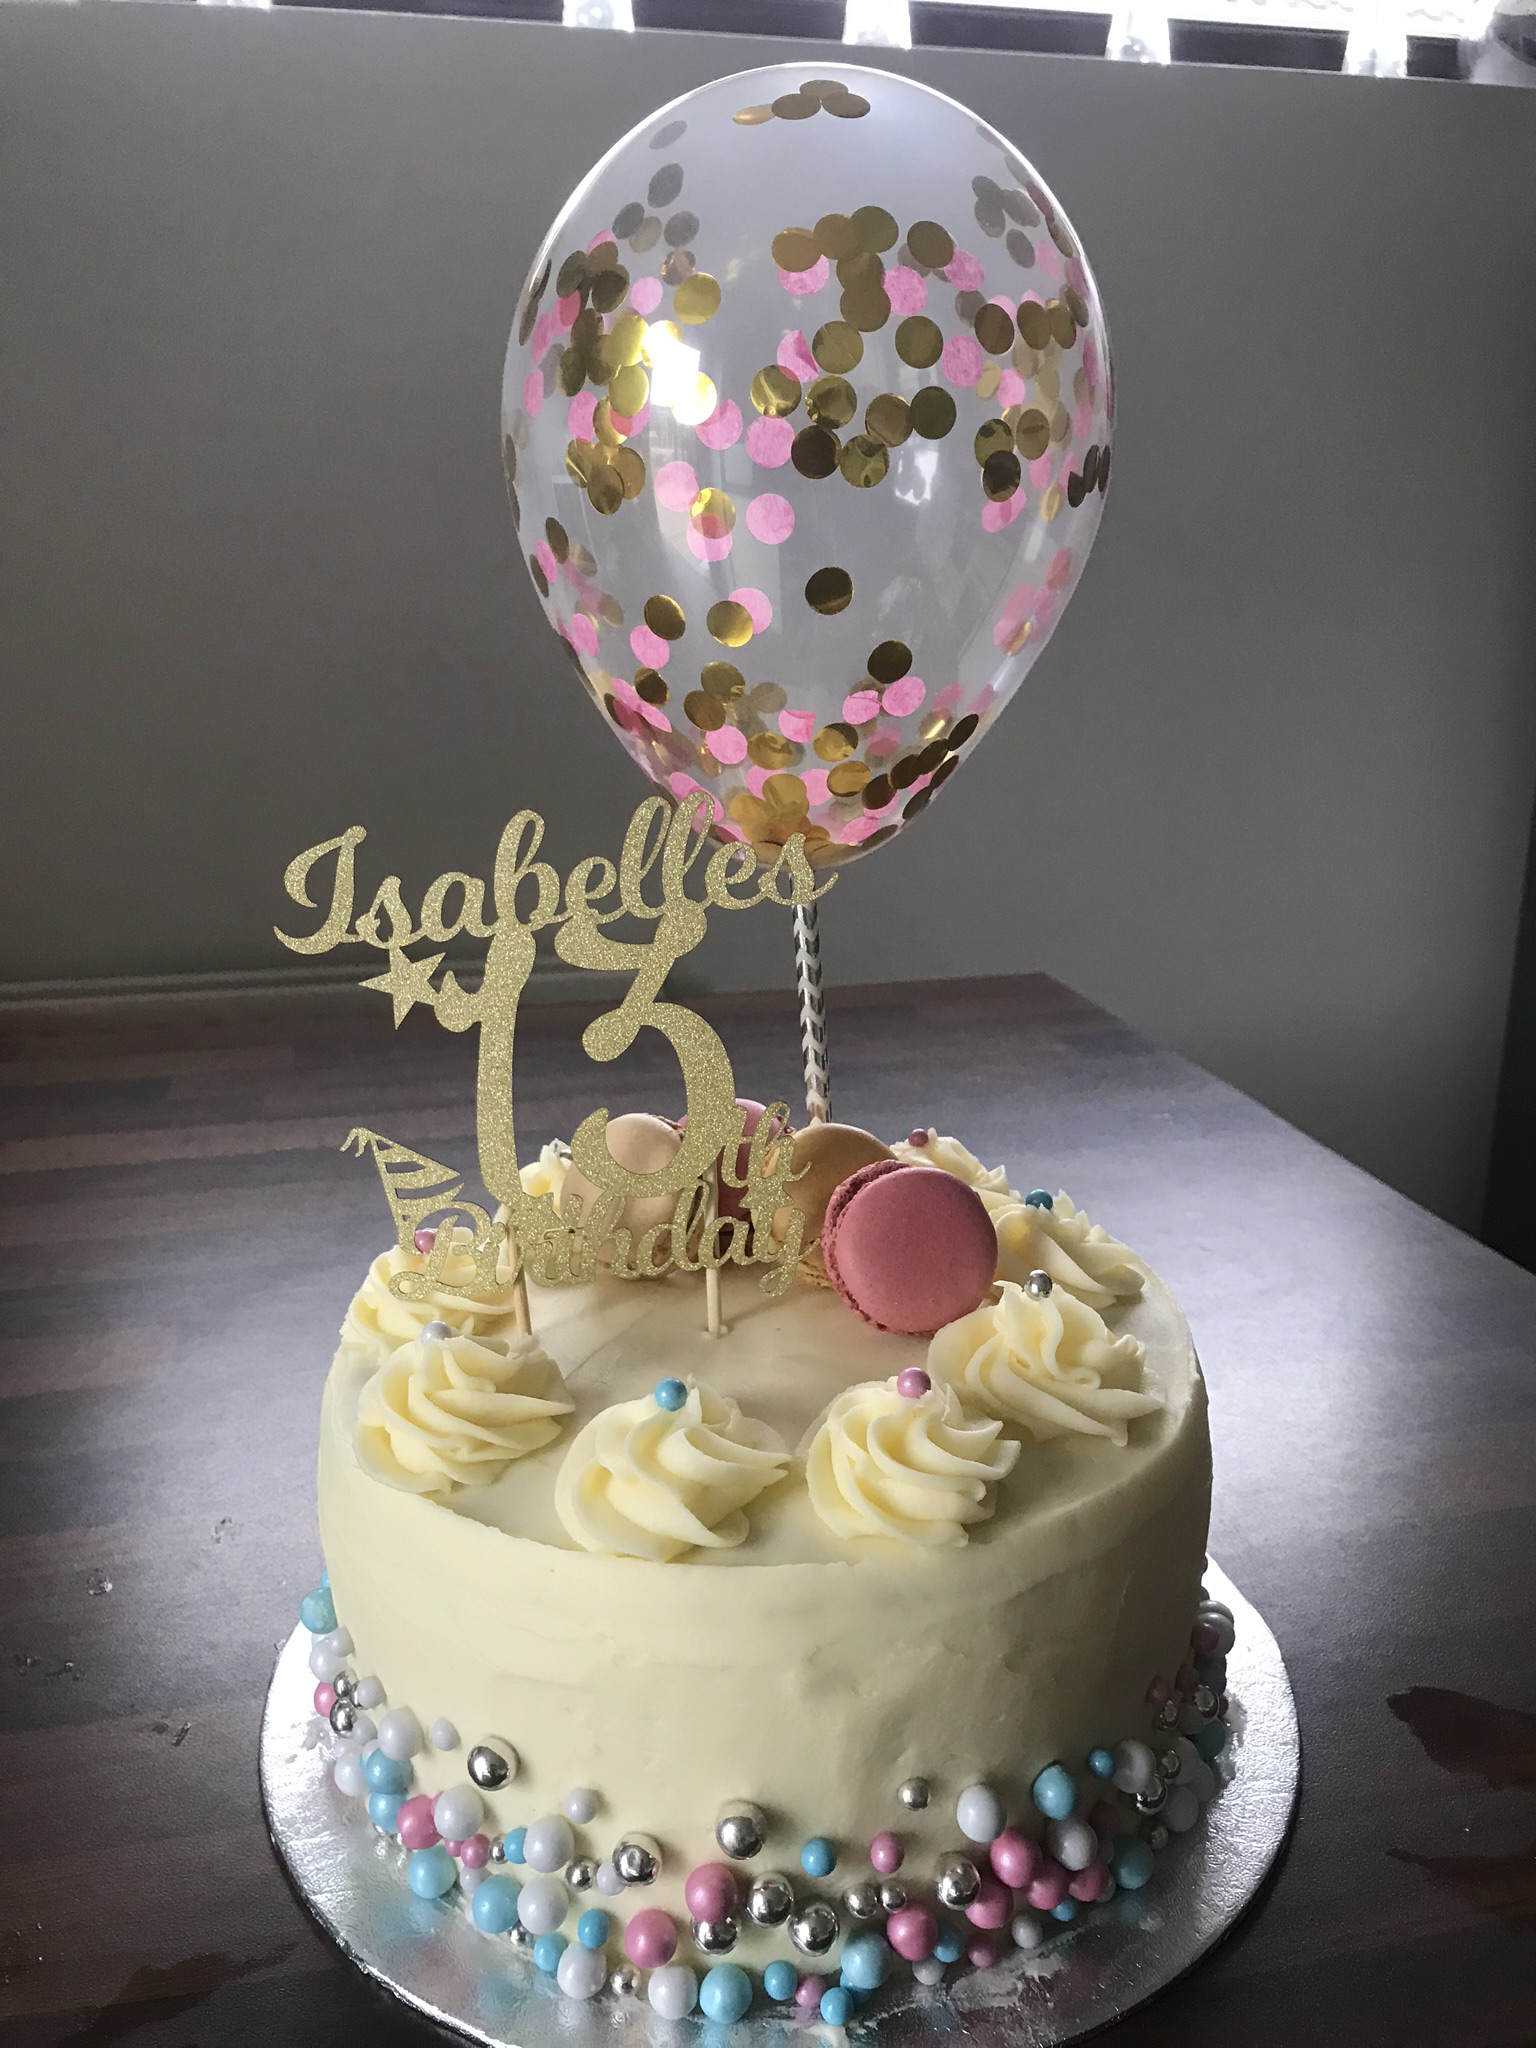 Prime Birthday Cake With A Confetti Balloon Topper Cake Appeal Personalised Birthday Cards Veneteletsinfo